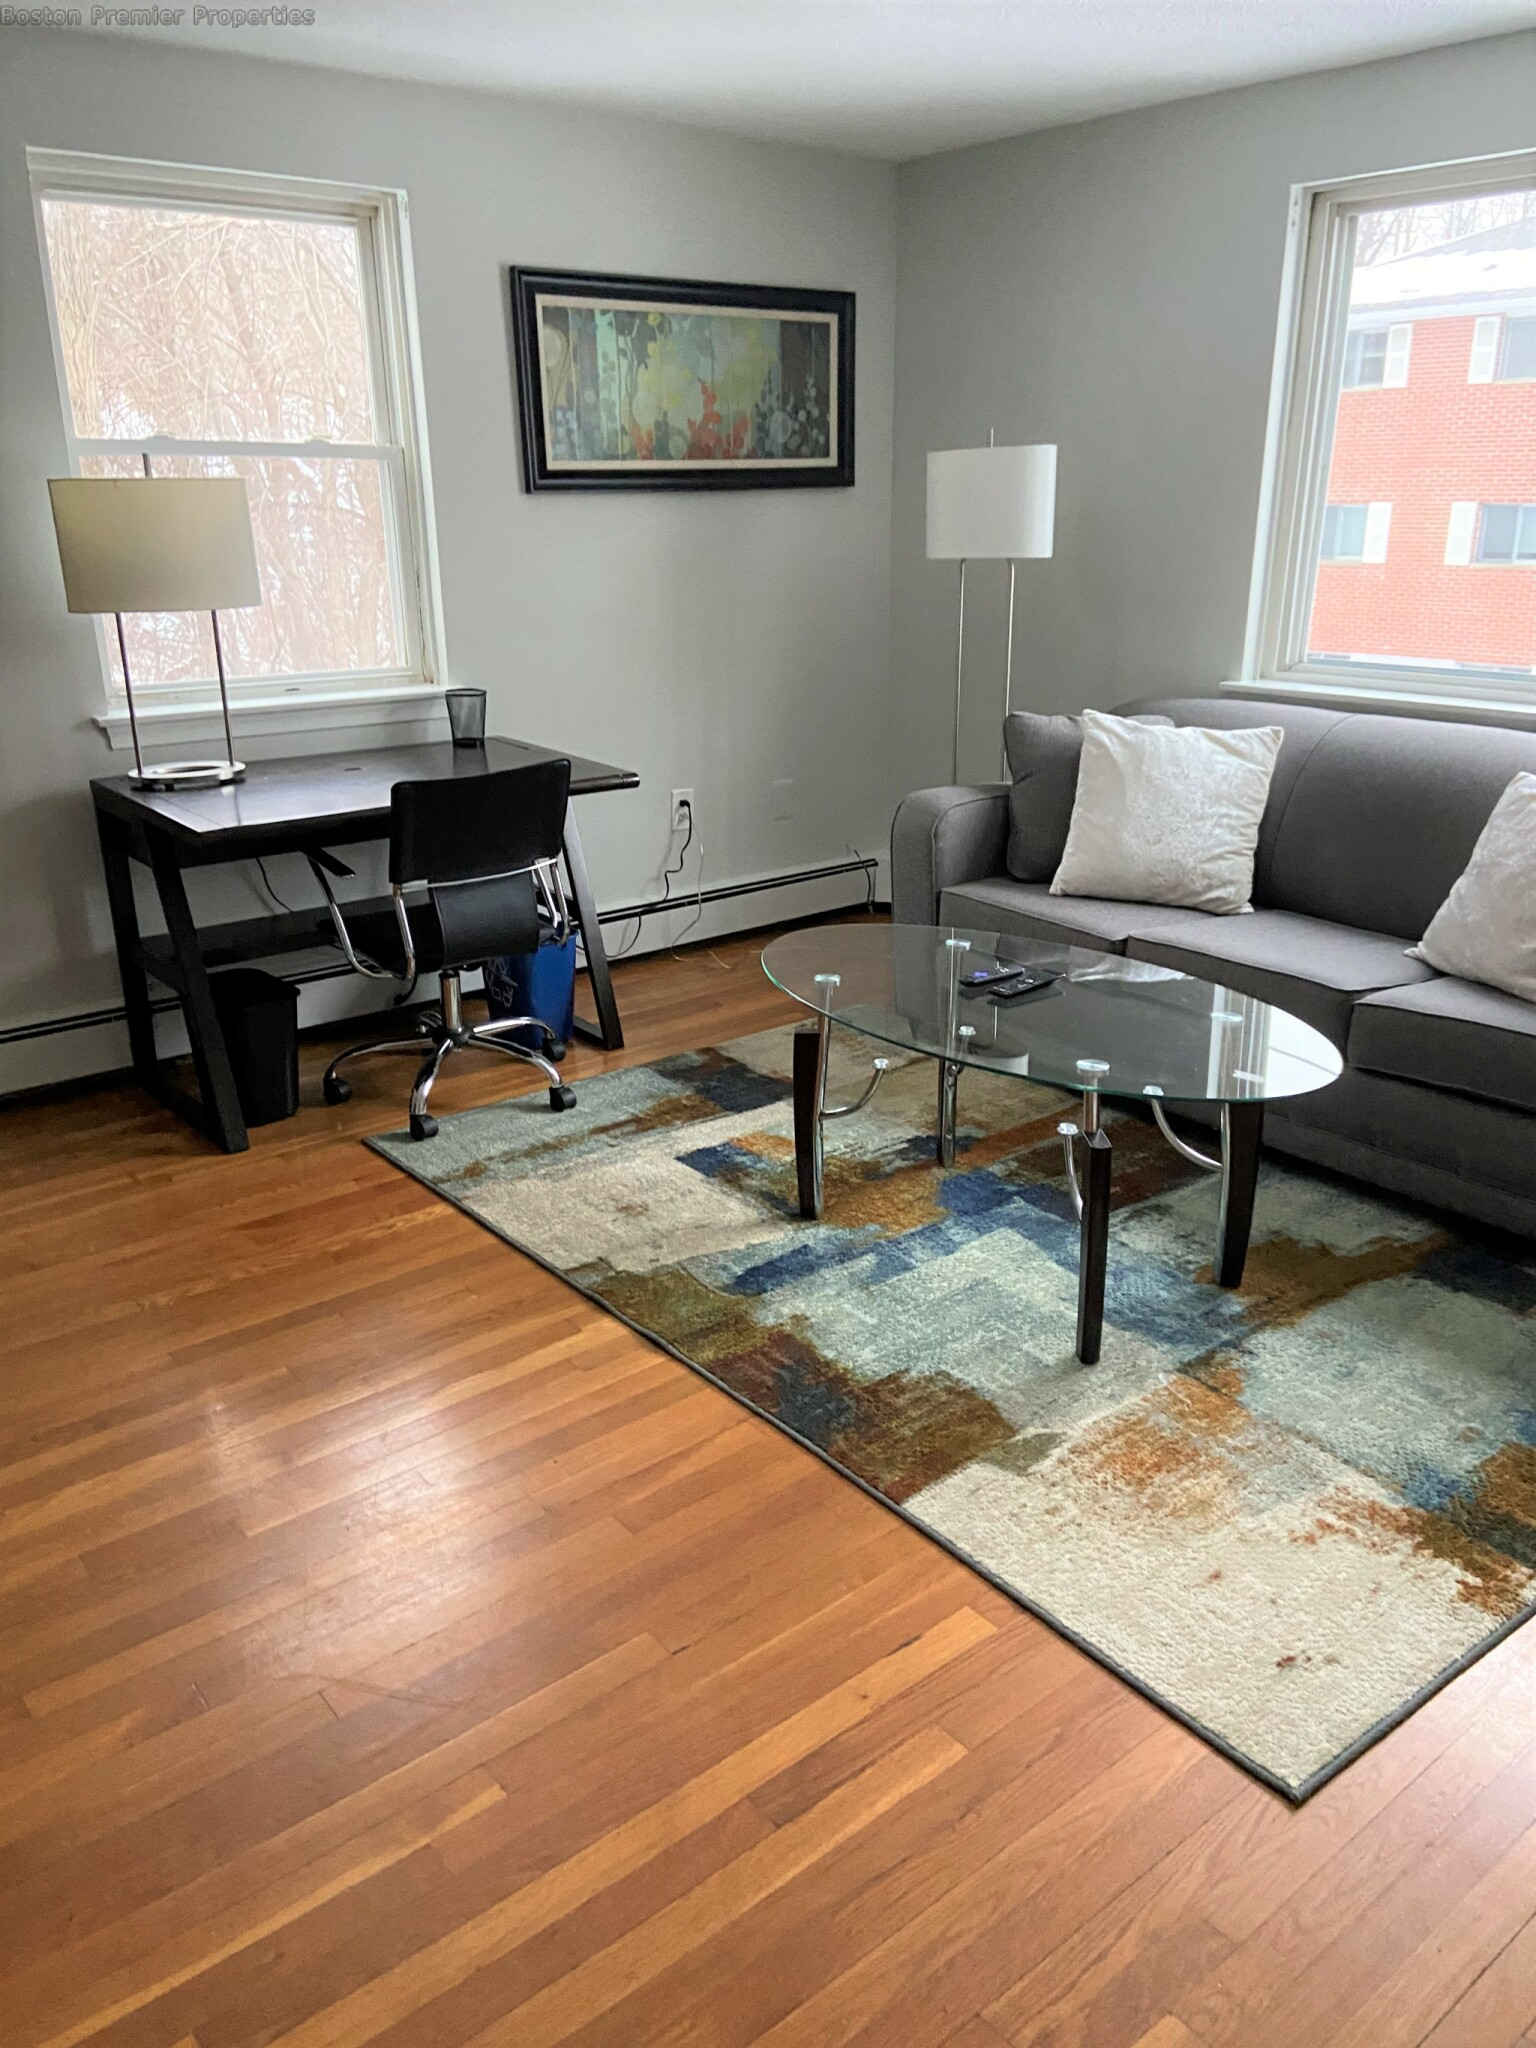 1 Bed, 1 Bath apartment in Quincy for $1,700